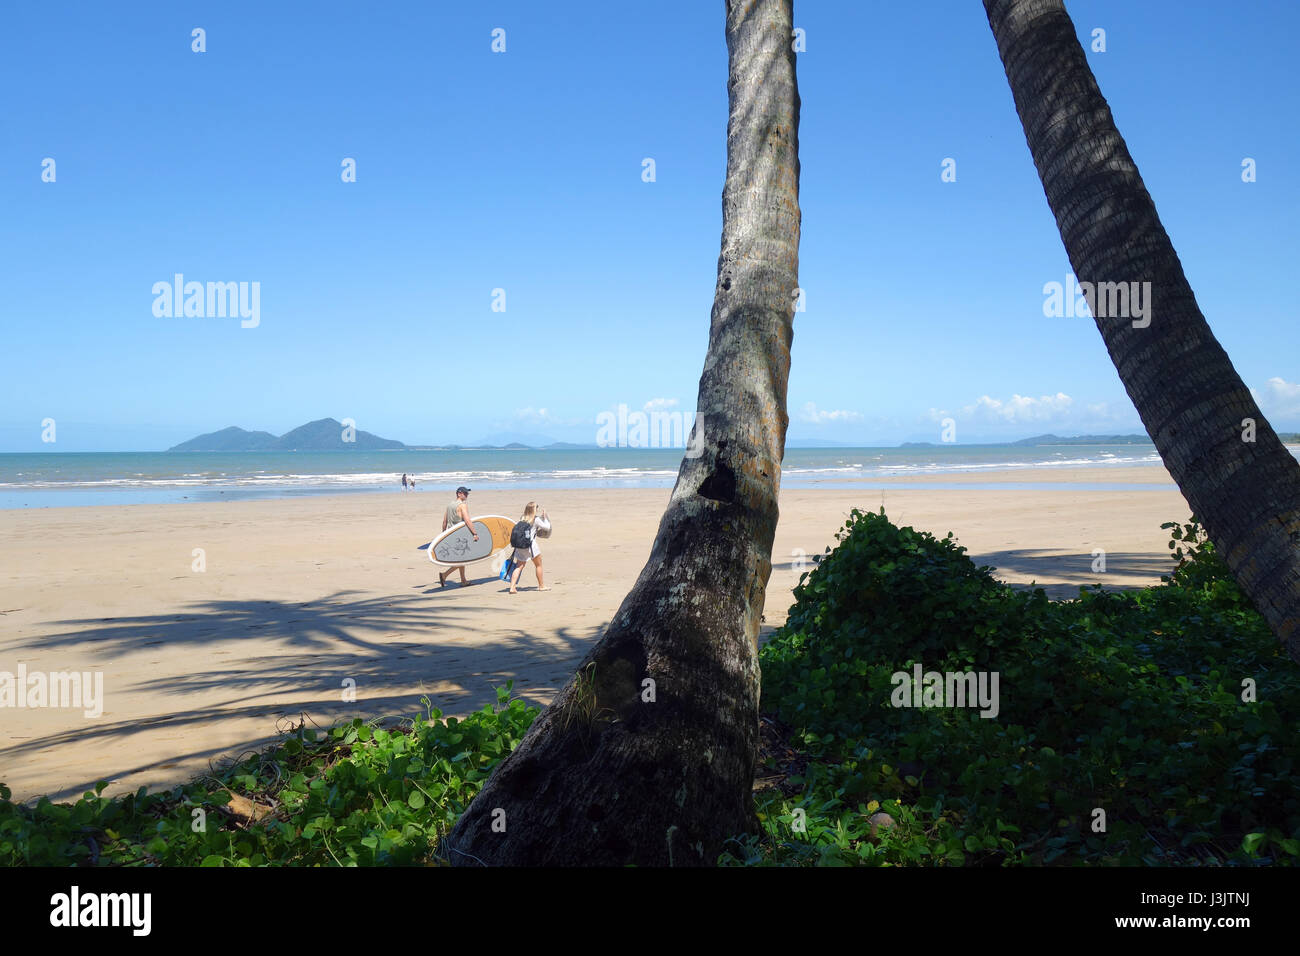 People walking along Mission Beach with Dunk Island in background, Queensland, Australia. no MR - Stock Image